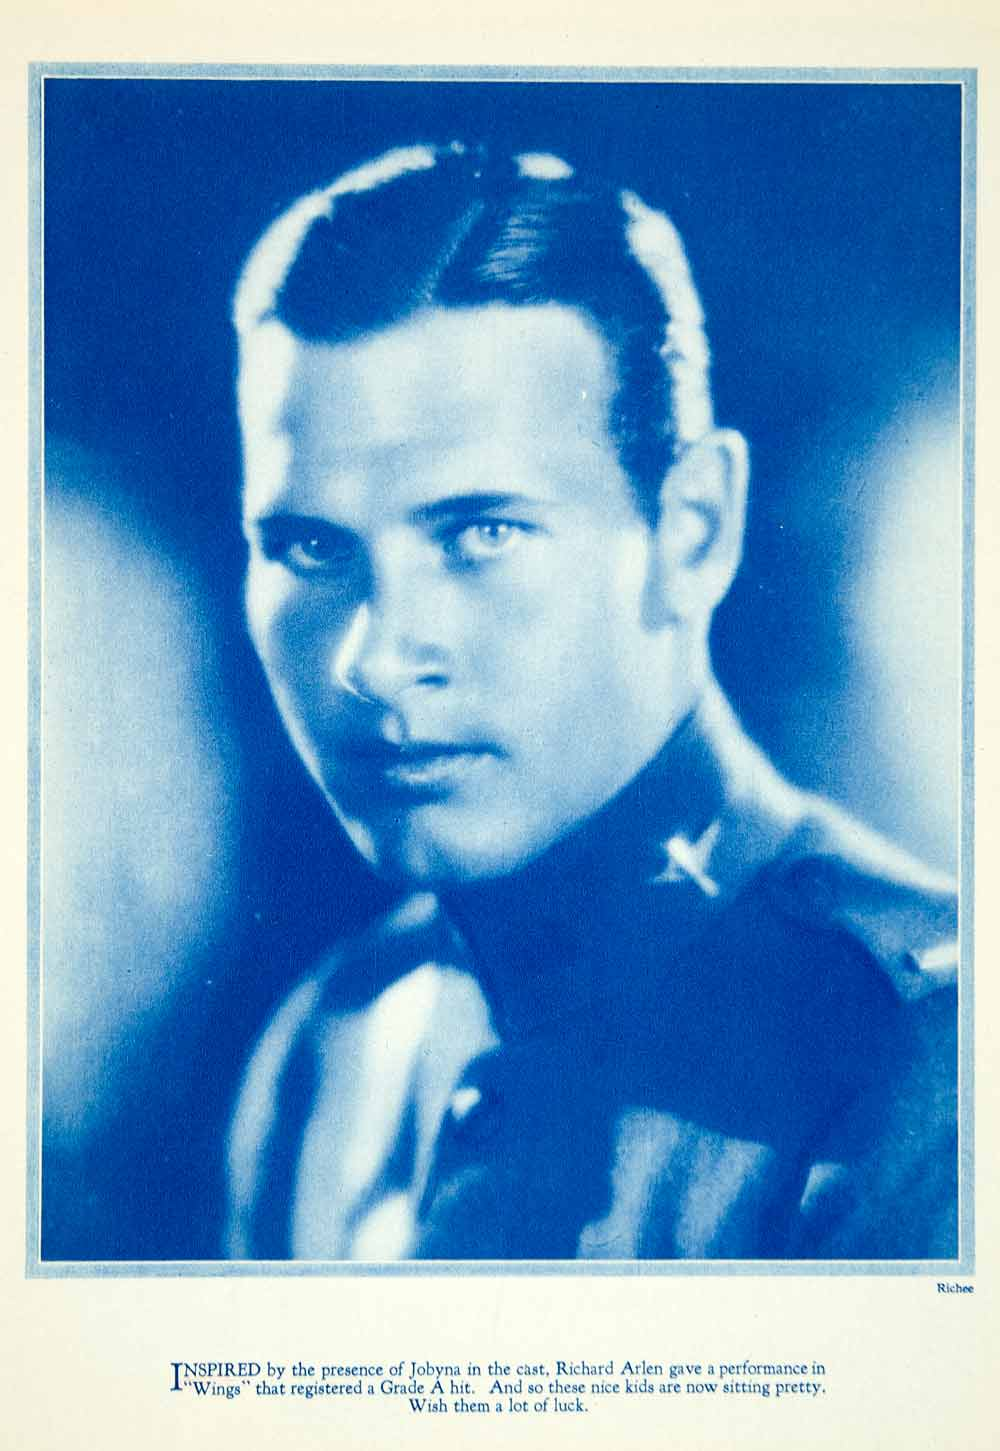 1927 Rotogravure Richard Arlen Portrait Silent Film Actor Wings Movies YPP3